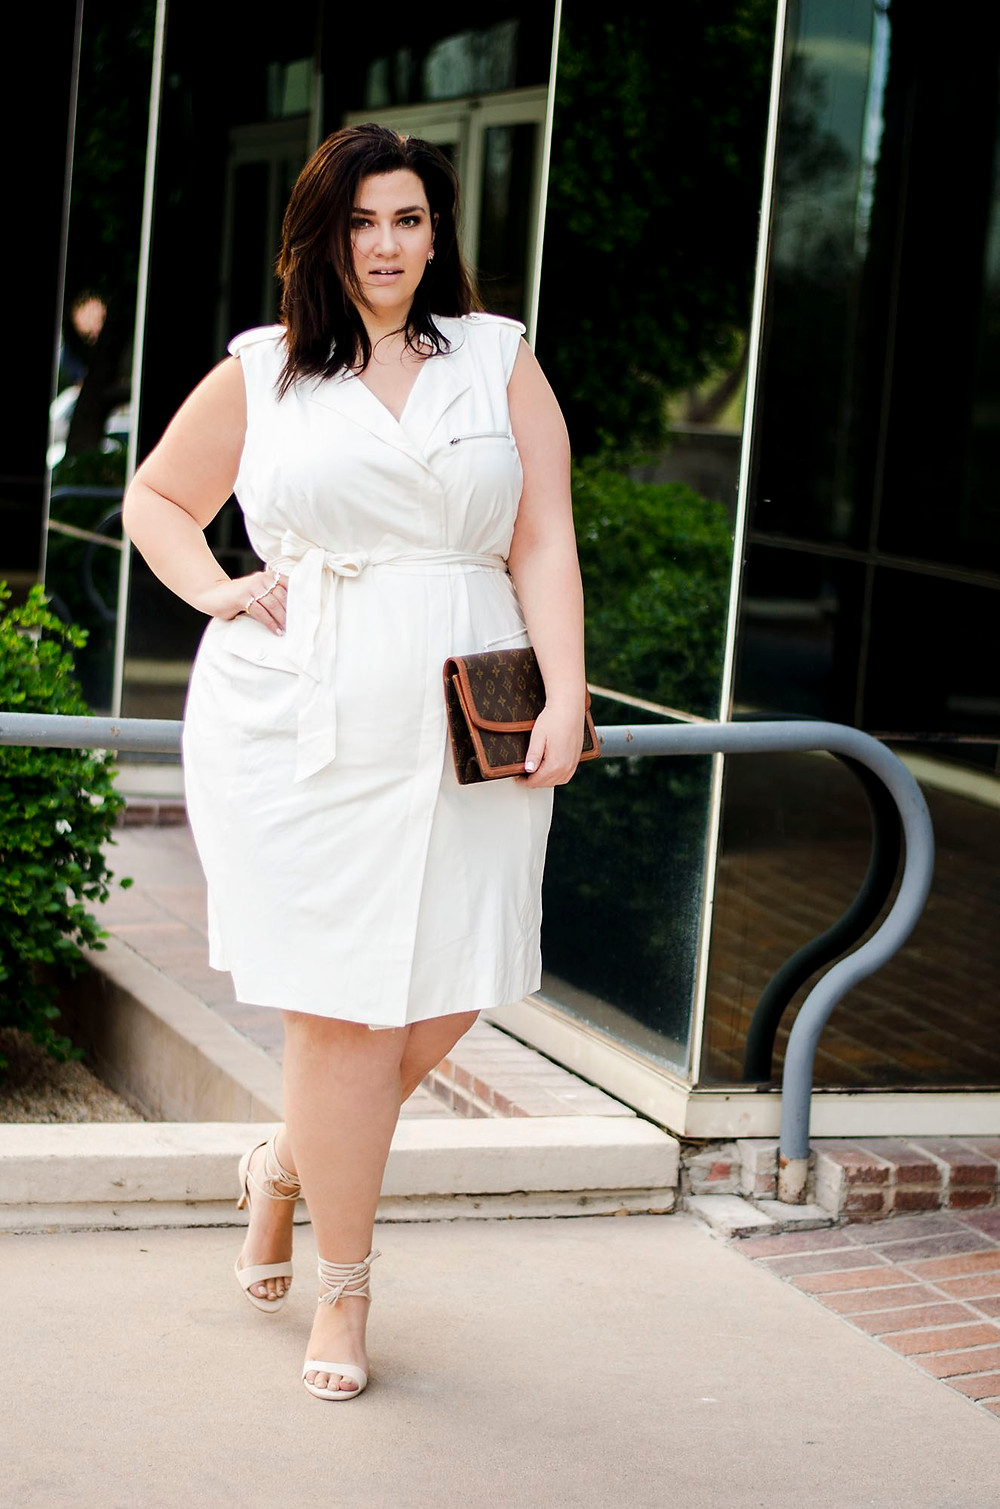 plus size white dress moto dress affordable fashion to figure crystal coons sometimes glam plus size ootd